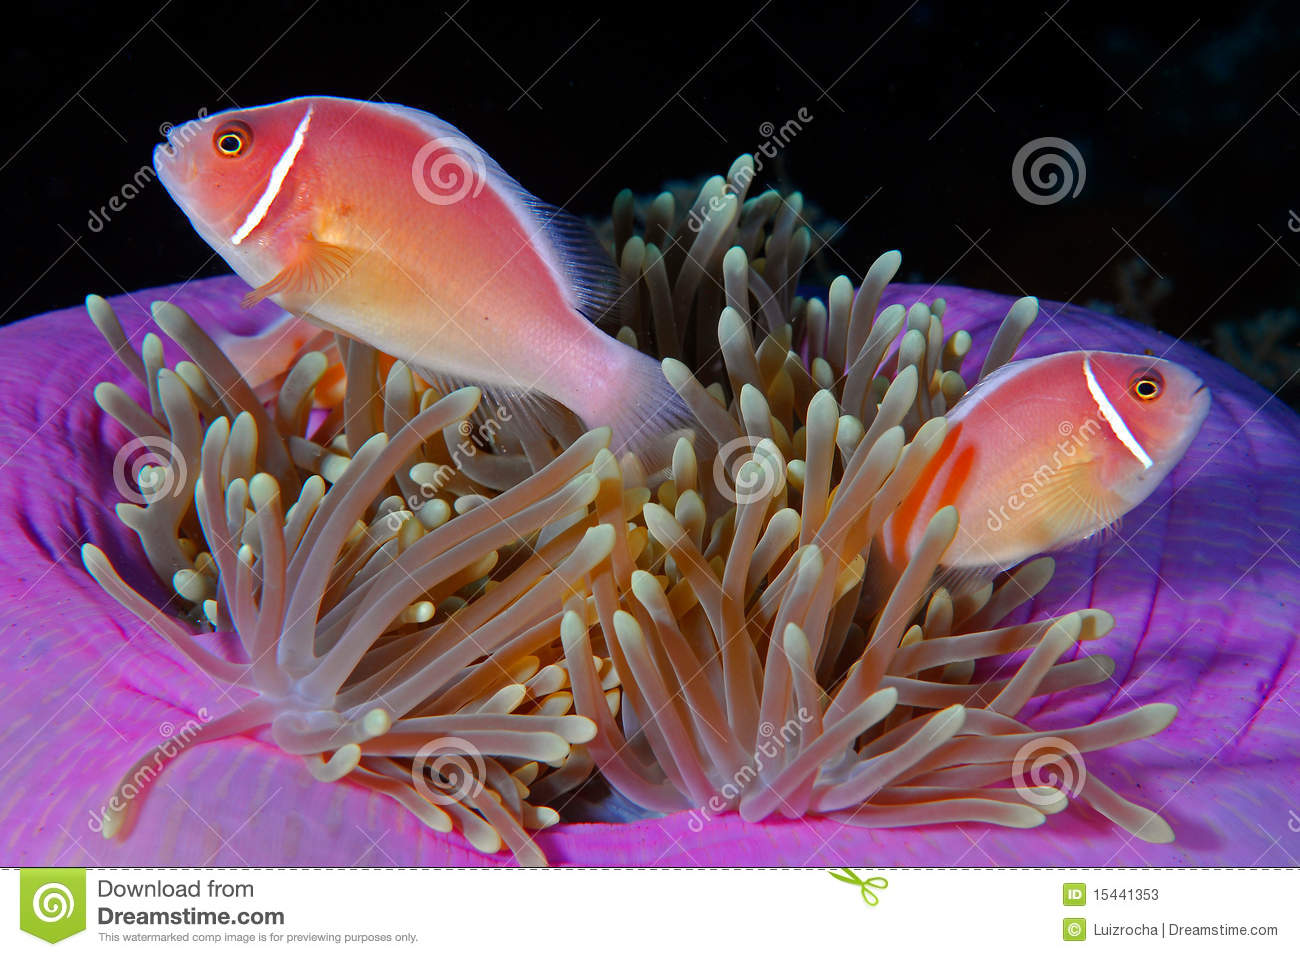 Anemonefish cor-de-rosa (perideraion do Amphiprion)